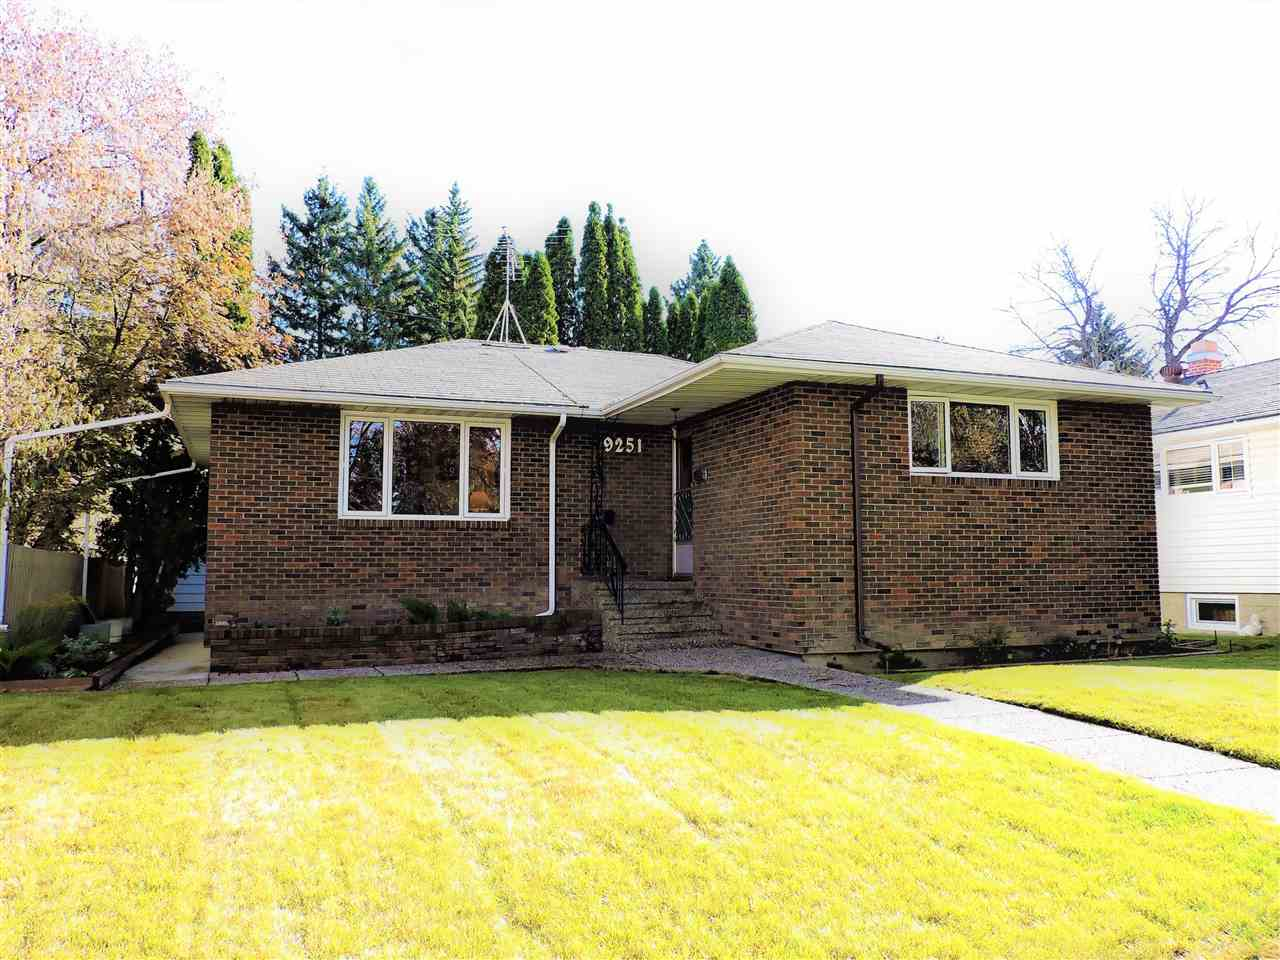 MLS® listing #E4177286 for sale located at 9251 148 Street